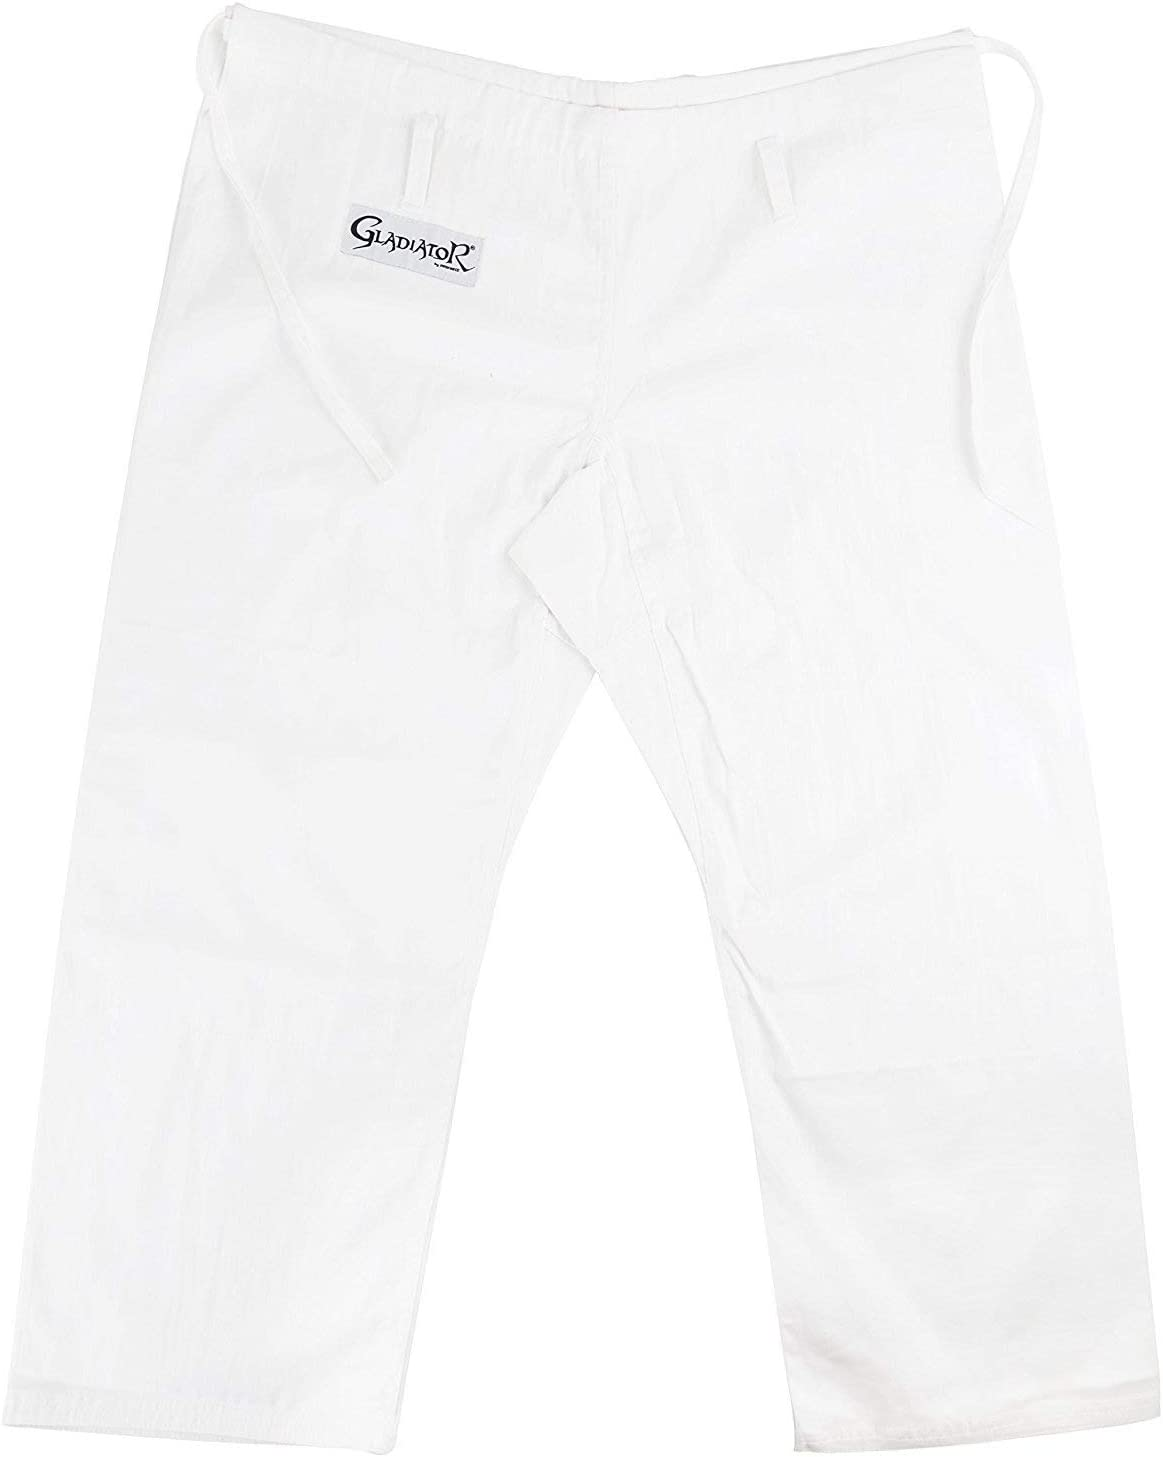 PROFORCE Gladiator Judo Ultra-Cheap Deals OFFicial store Pants 000 White - Size